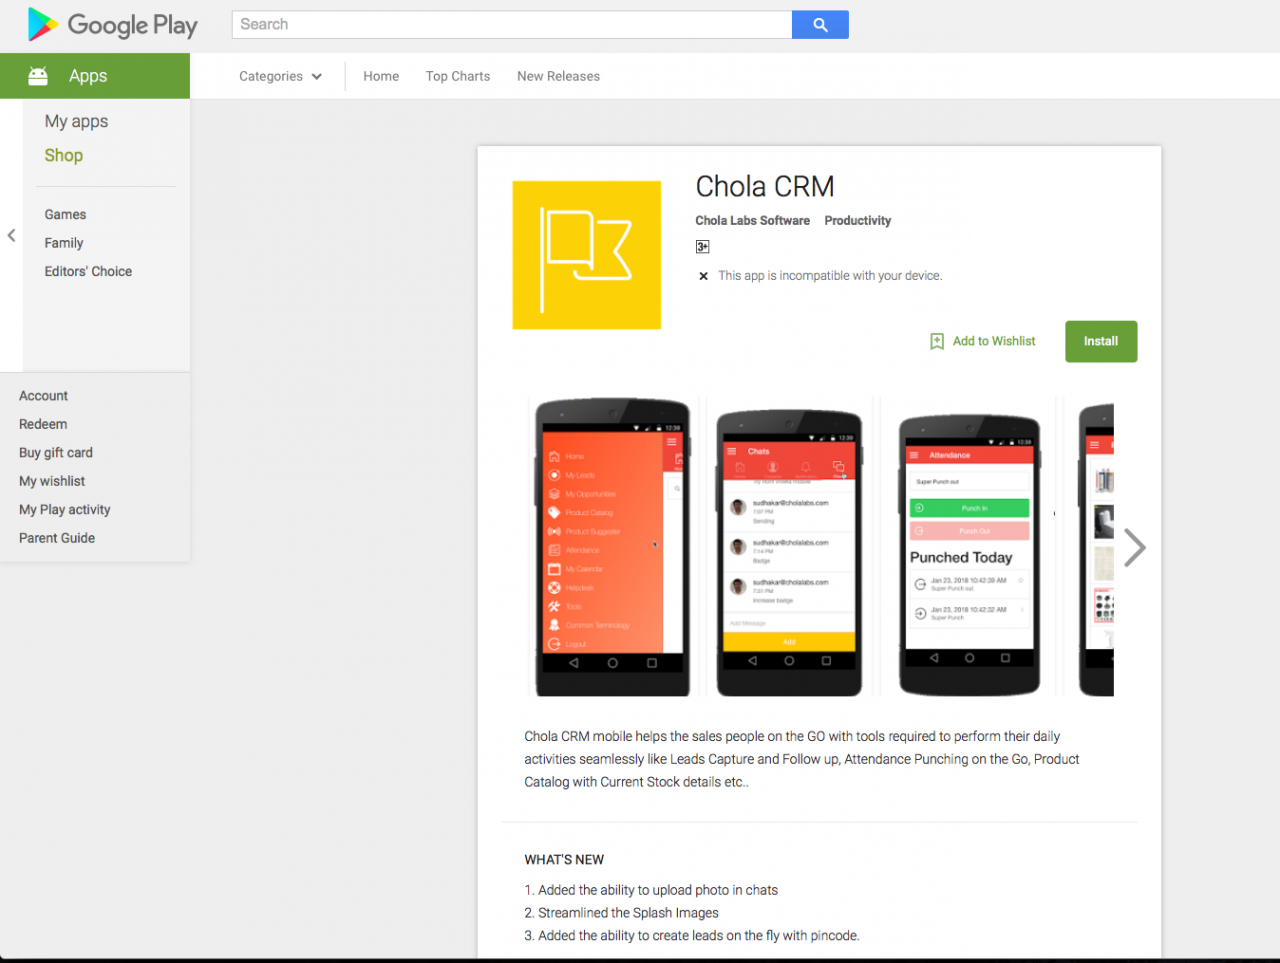 Chola CRM Mobile app launched on Google Play Store